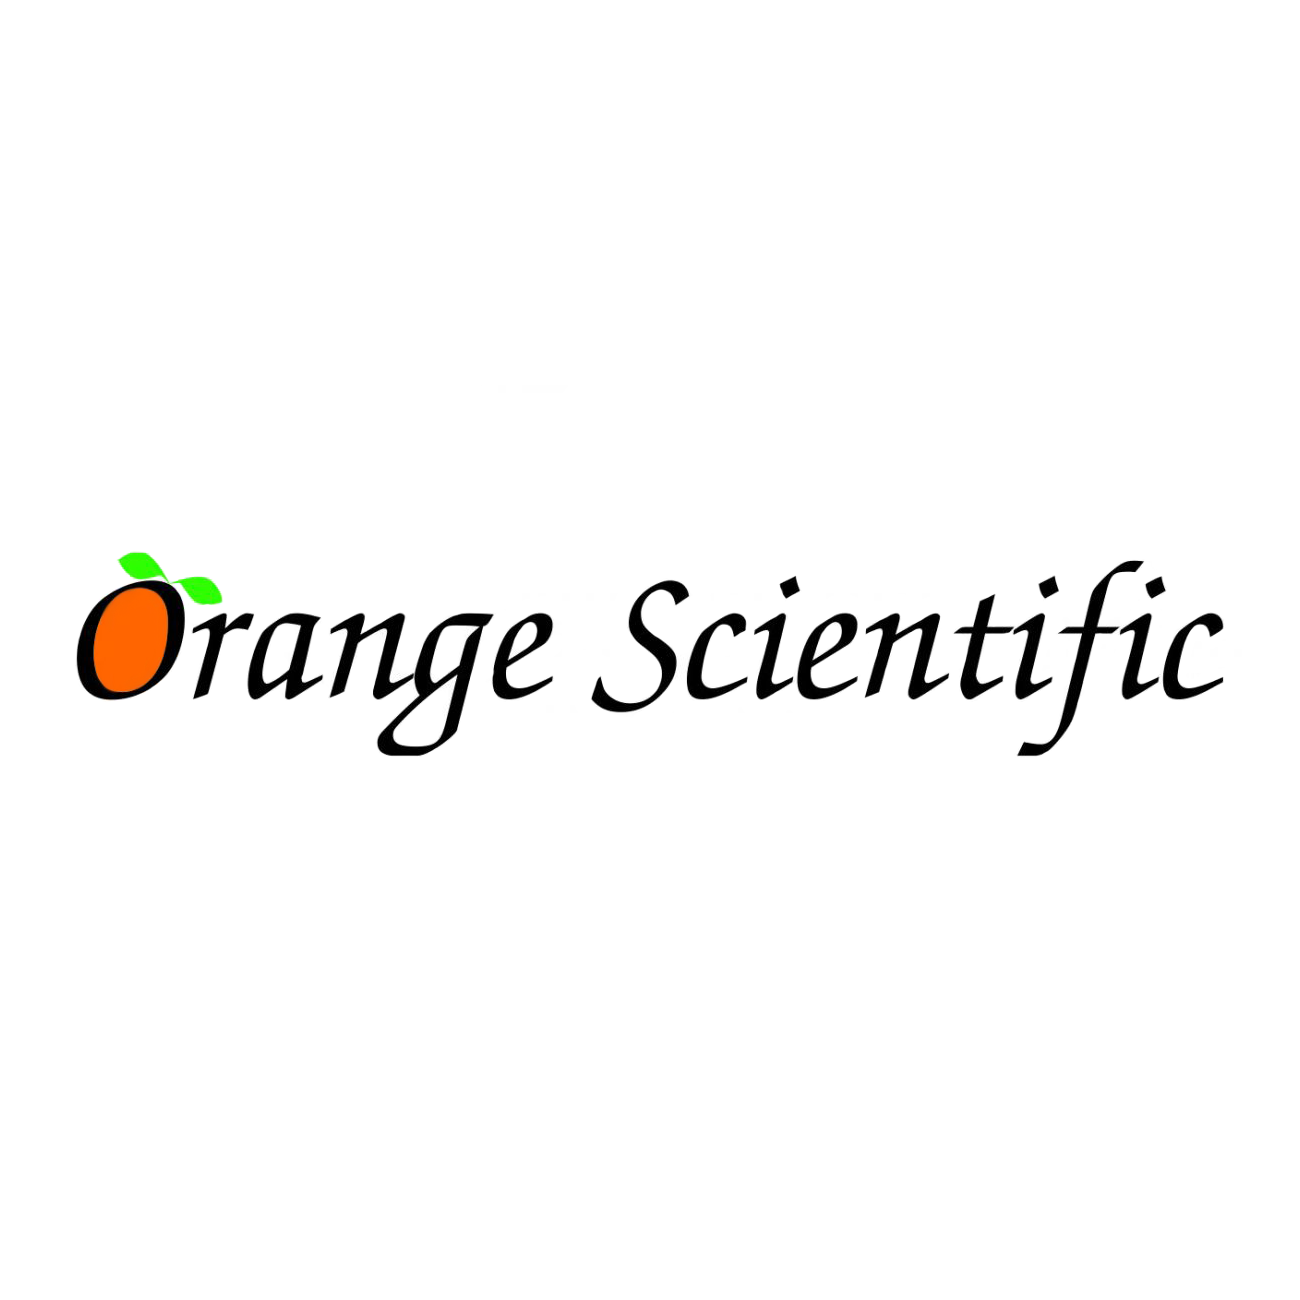 Orange Scientific